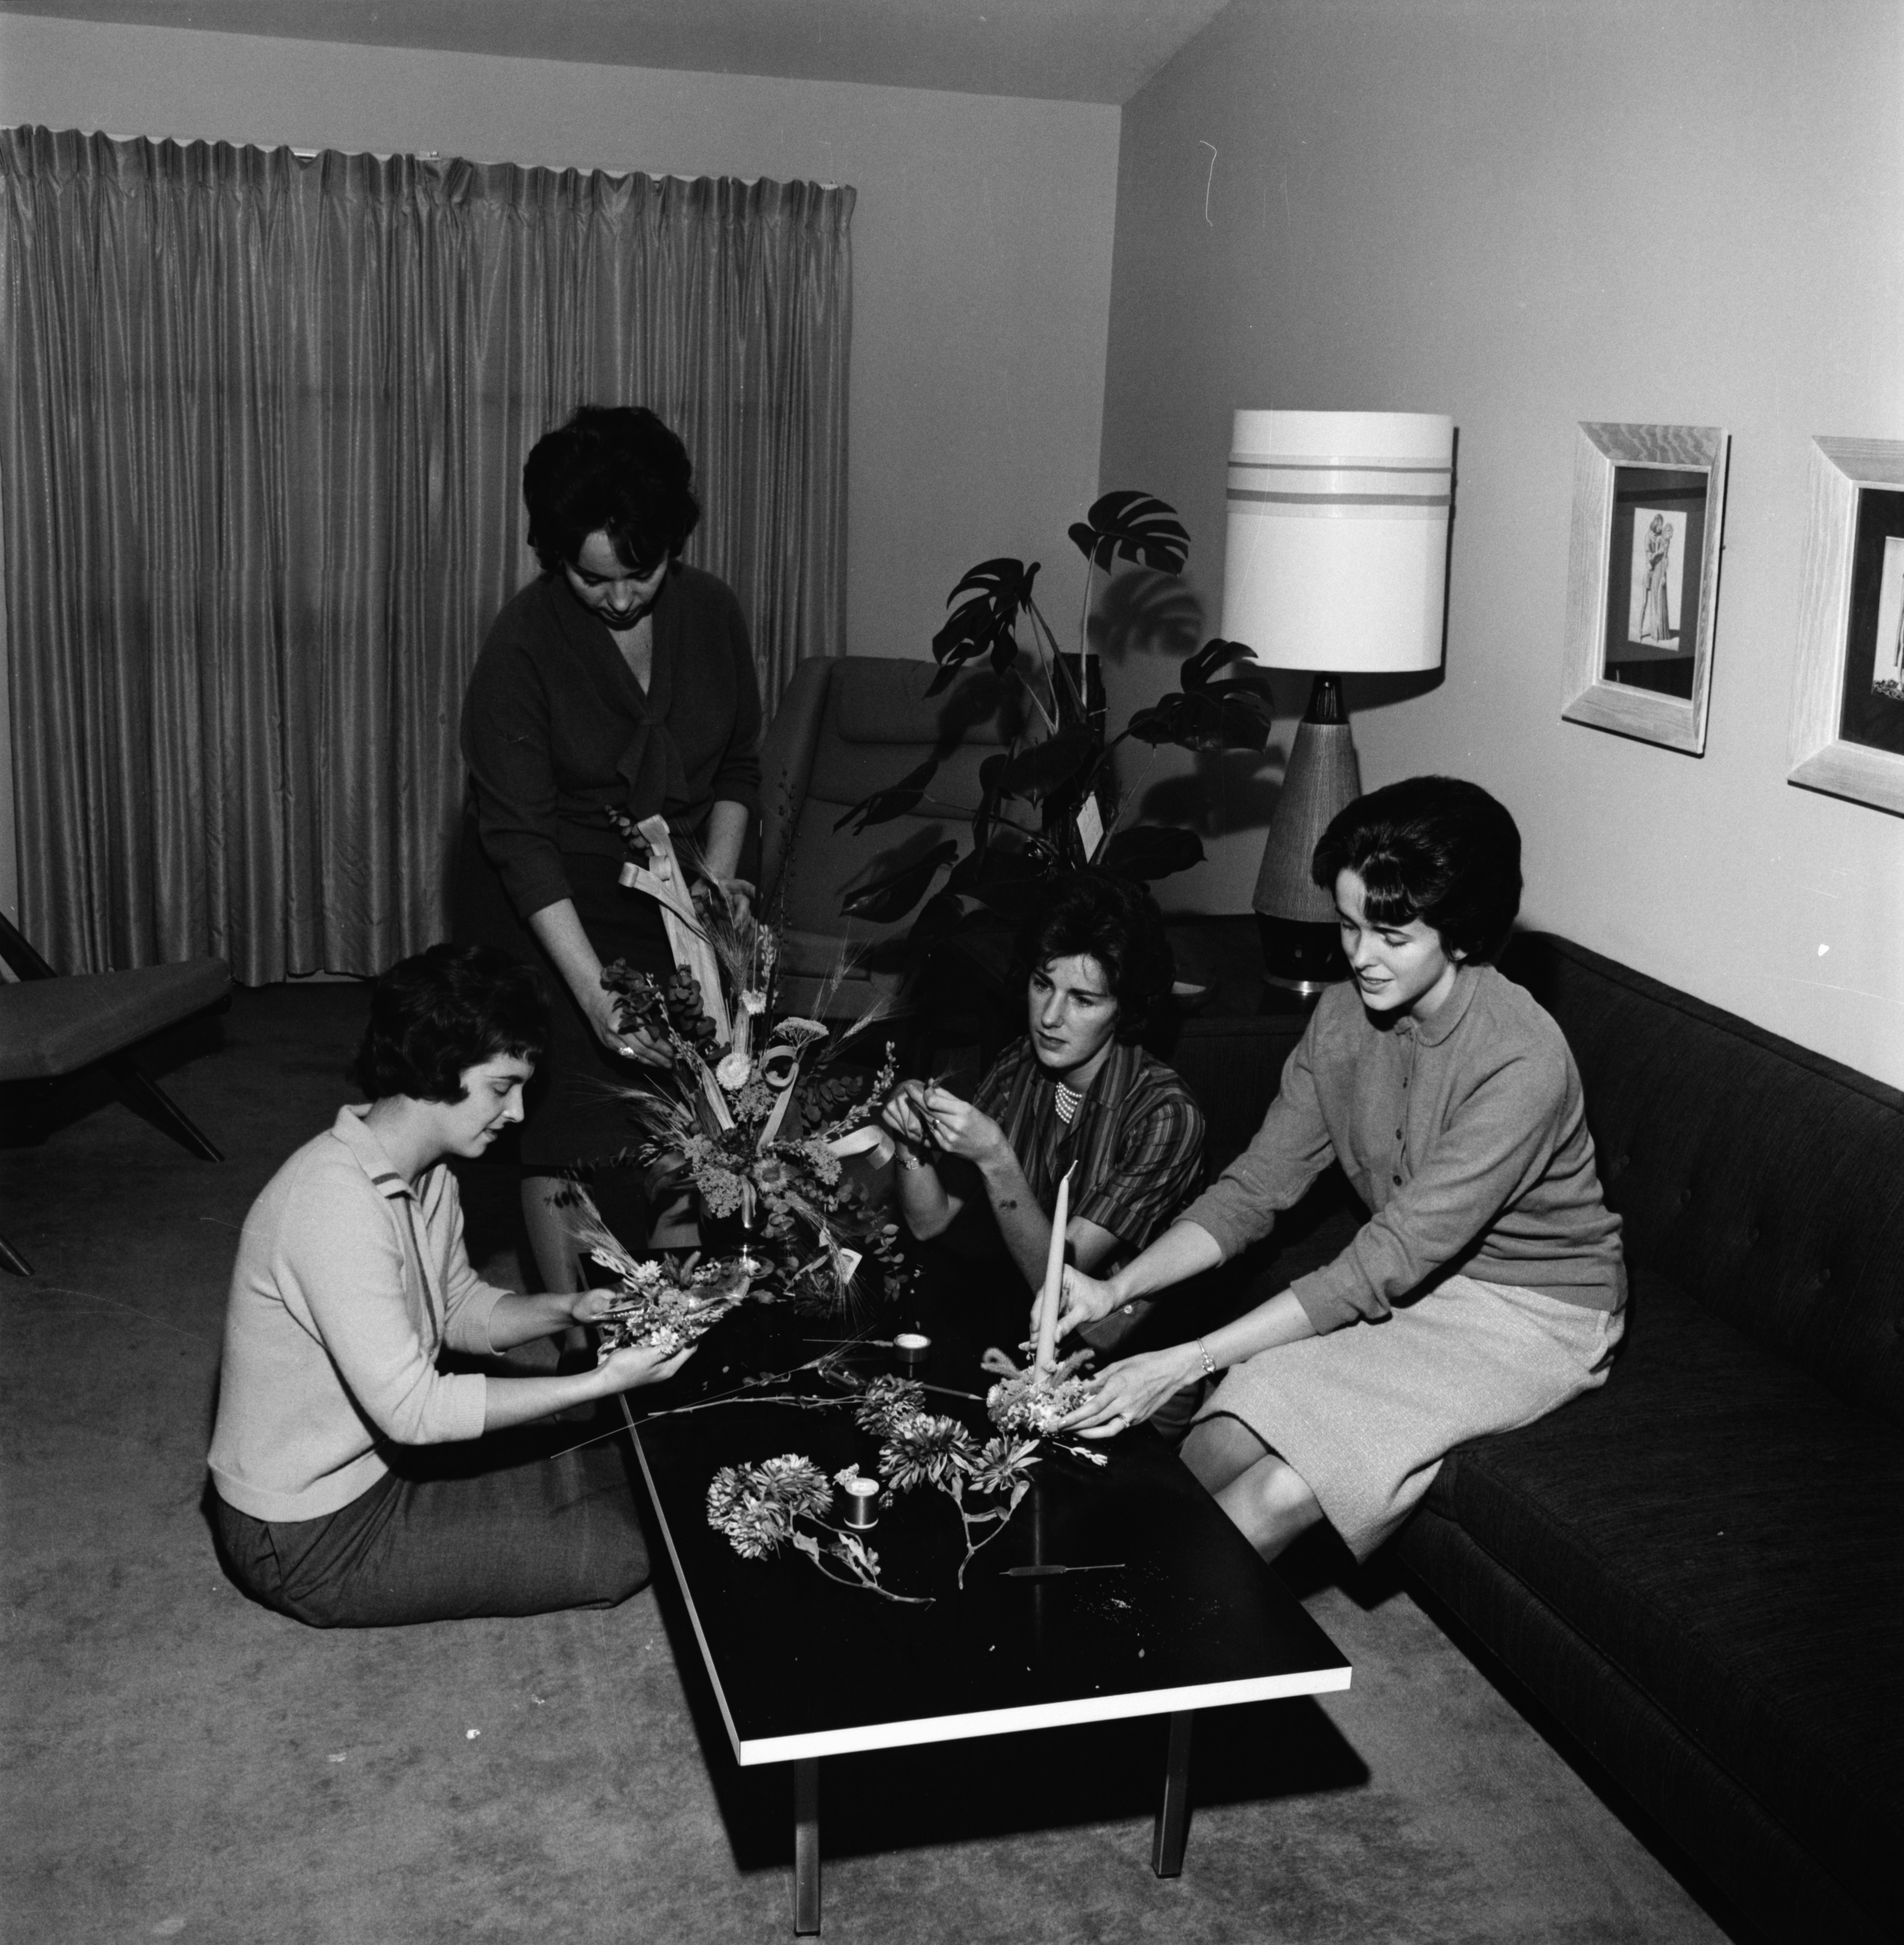 St. Francis Altar Society Prepare for Telephone Bridge Card Party, November 1961 image